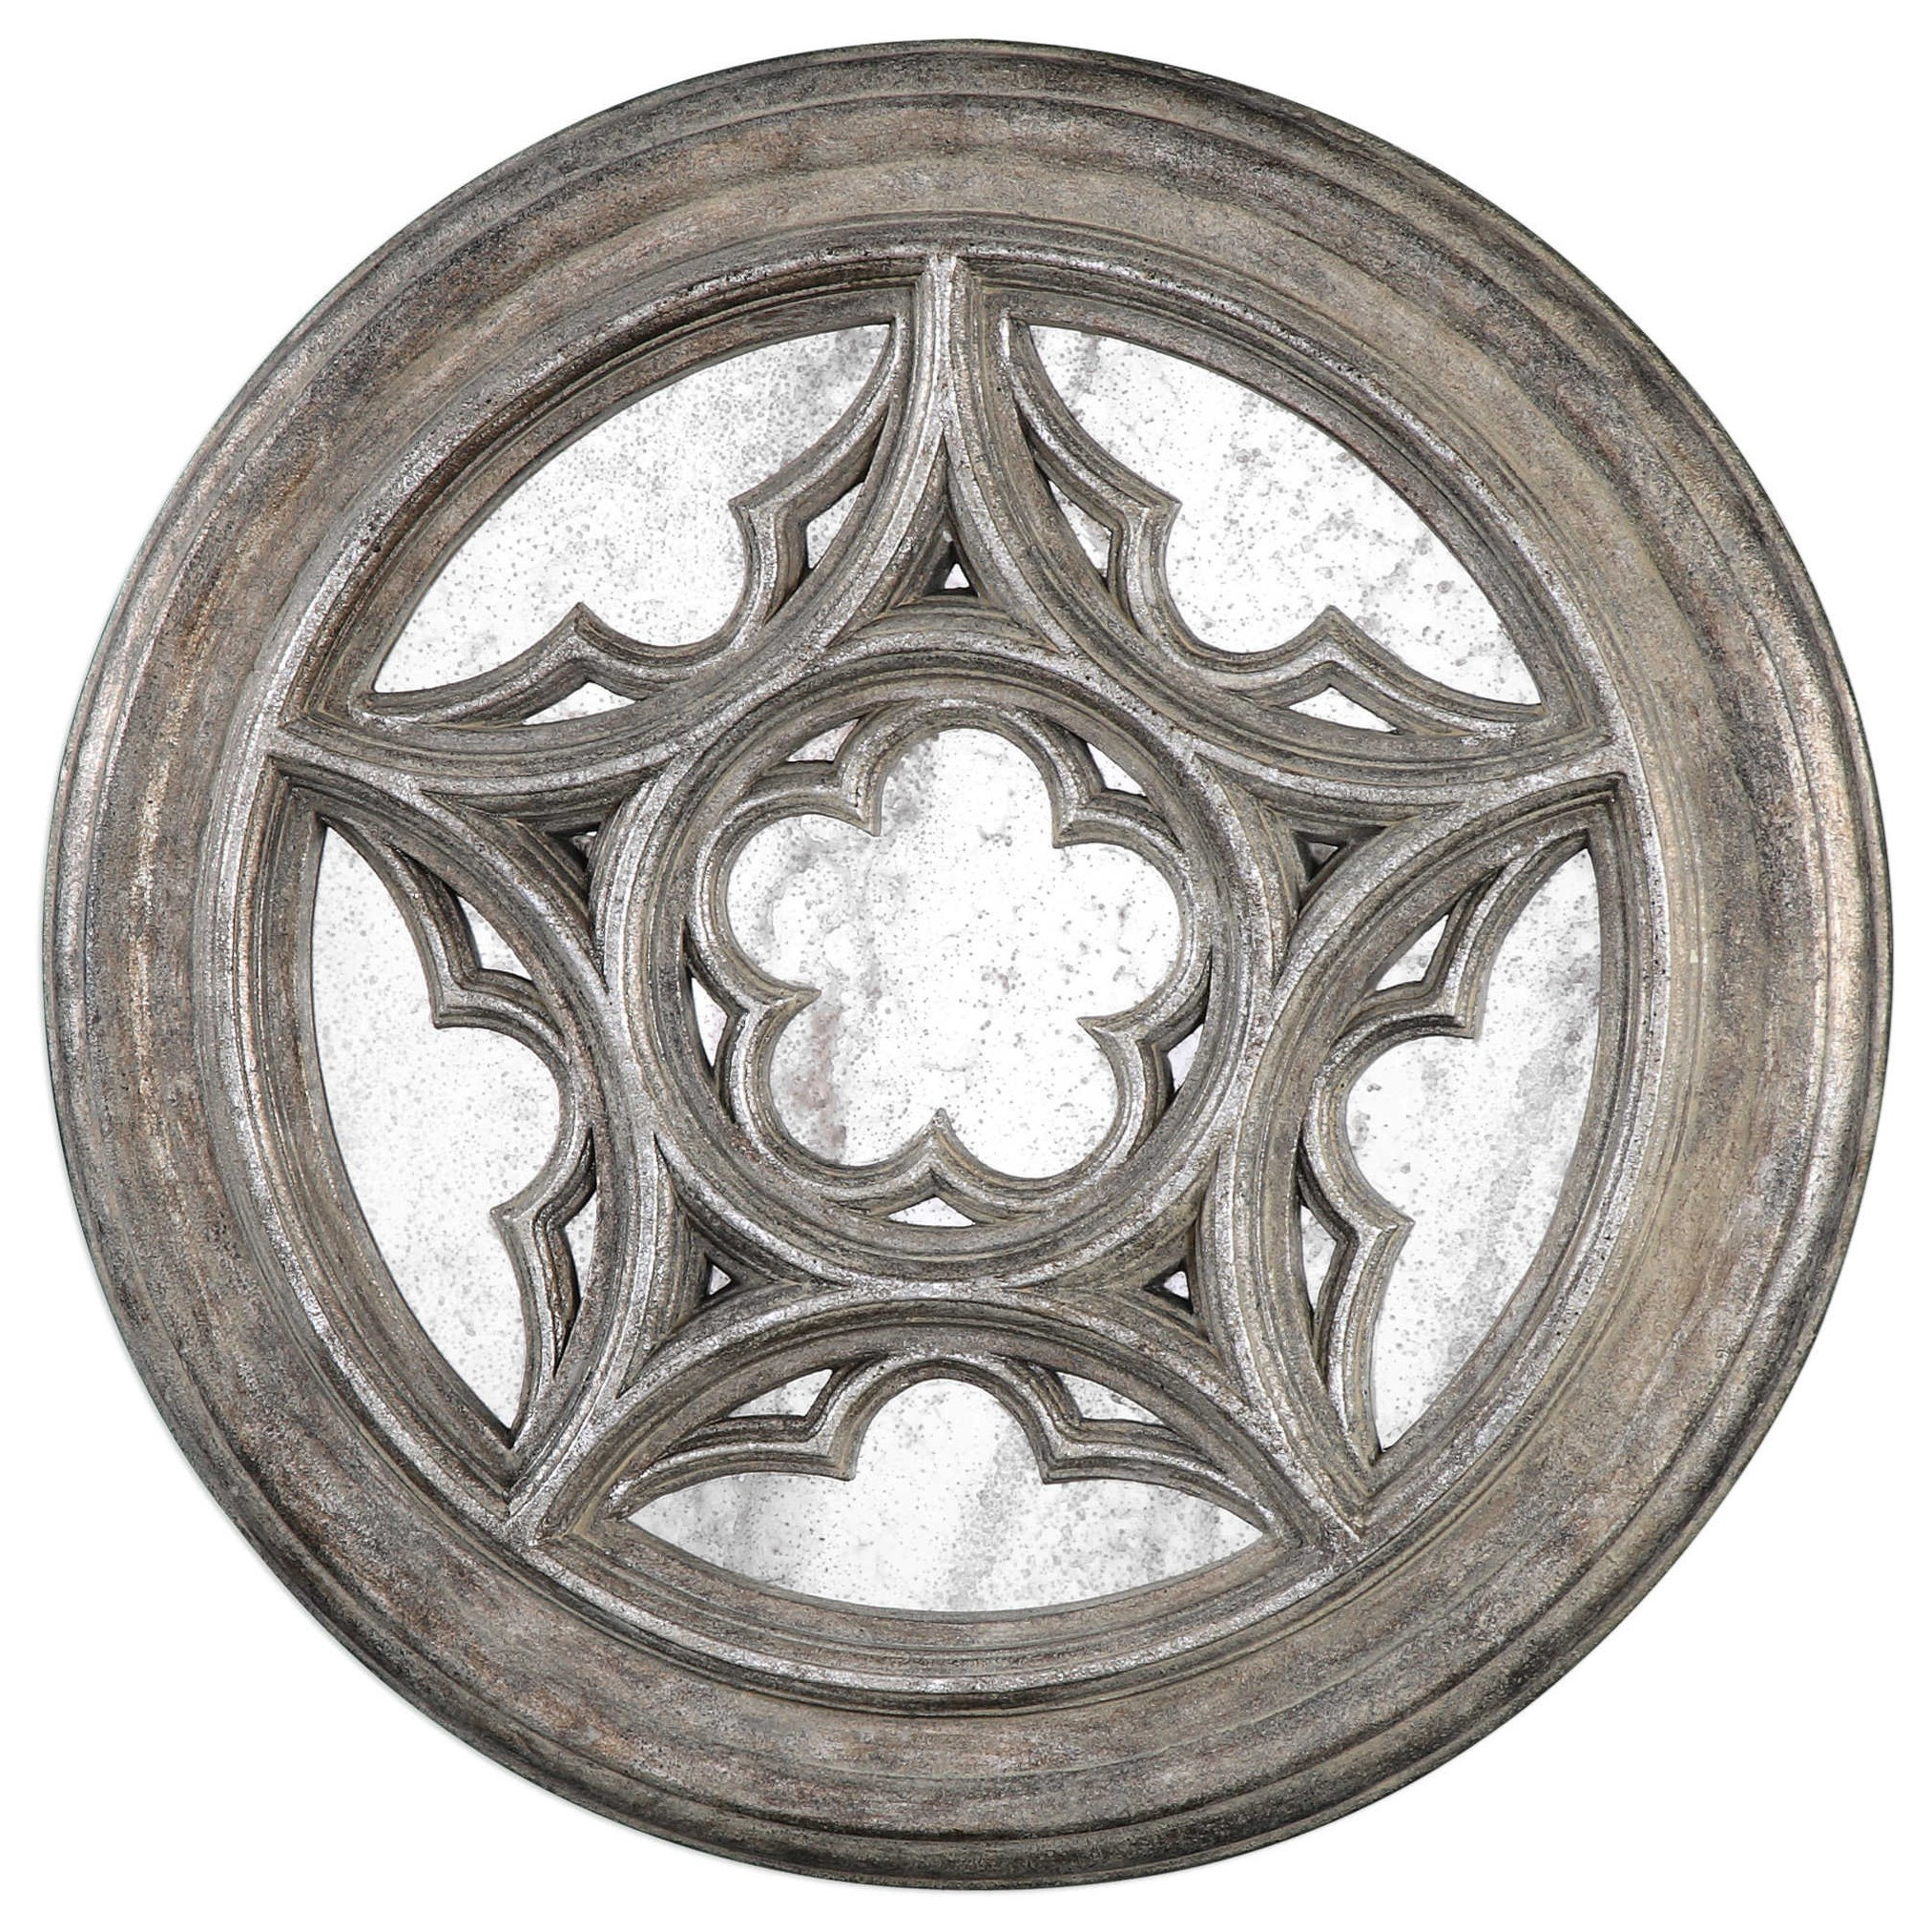 Uttermost alternative wall decor marwin round window mirror uttermost alternative wall decor marwin round window mirror item number 04097 amipublicfo Gallery